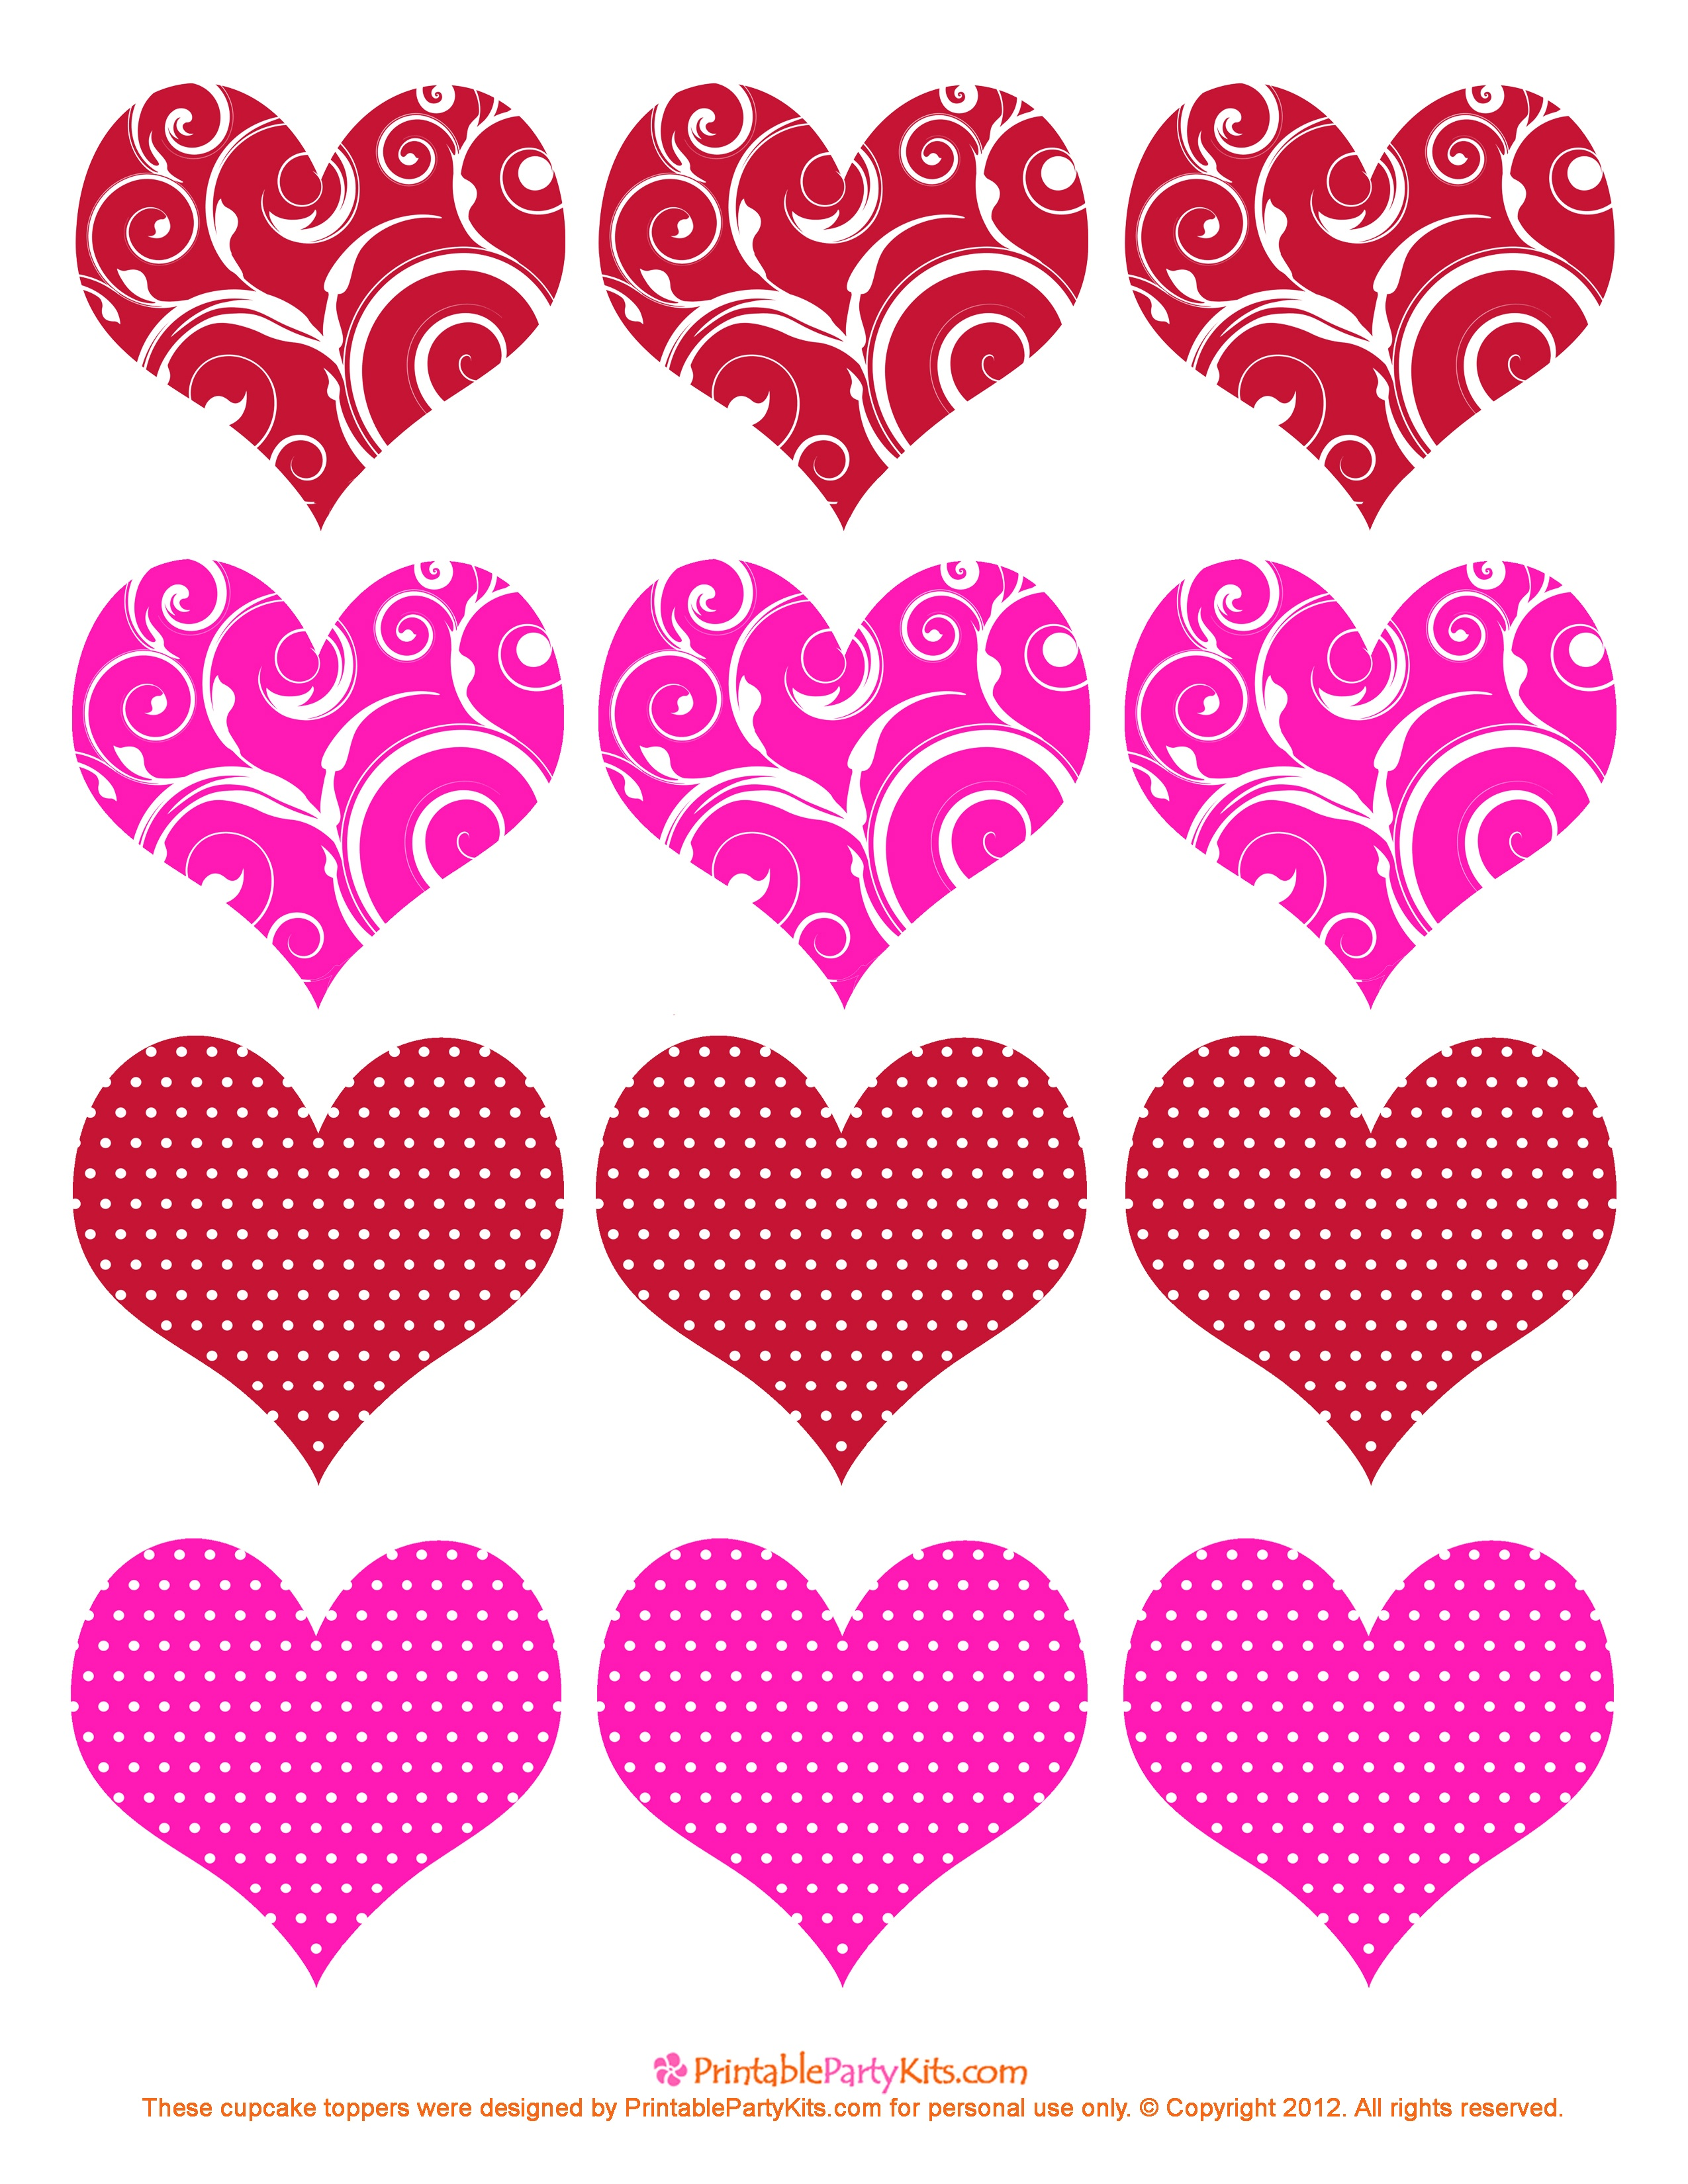 11 Valentine Heart Template Images - Free Printable Valentine Hearts - Free Printable Heart Templates